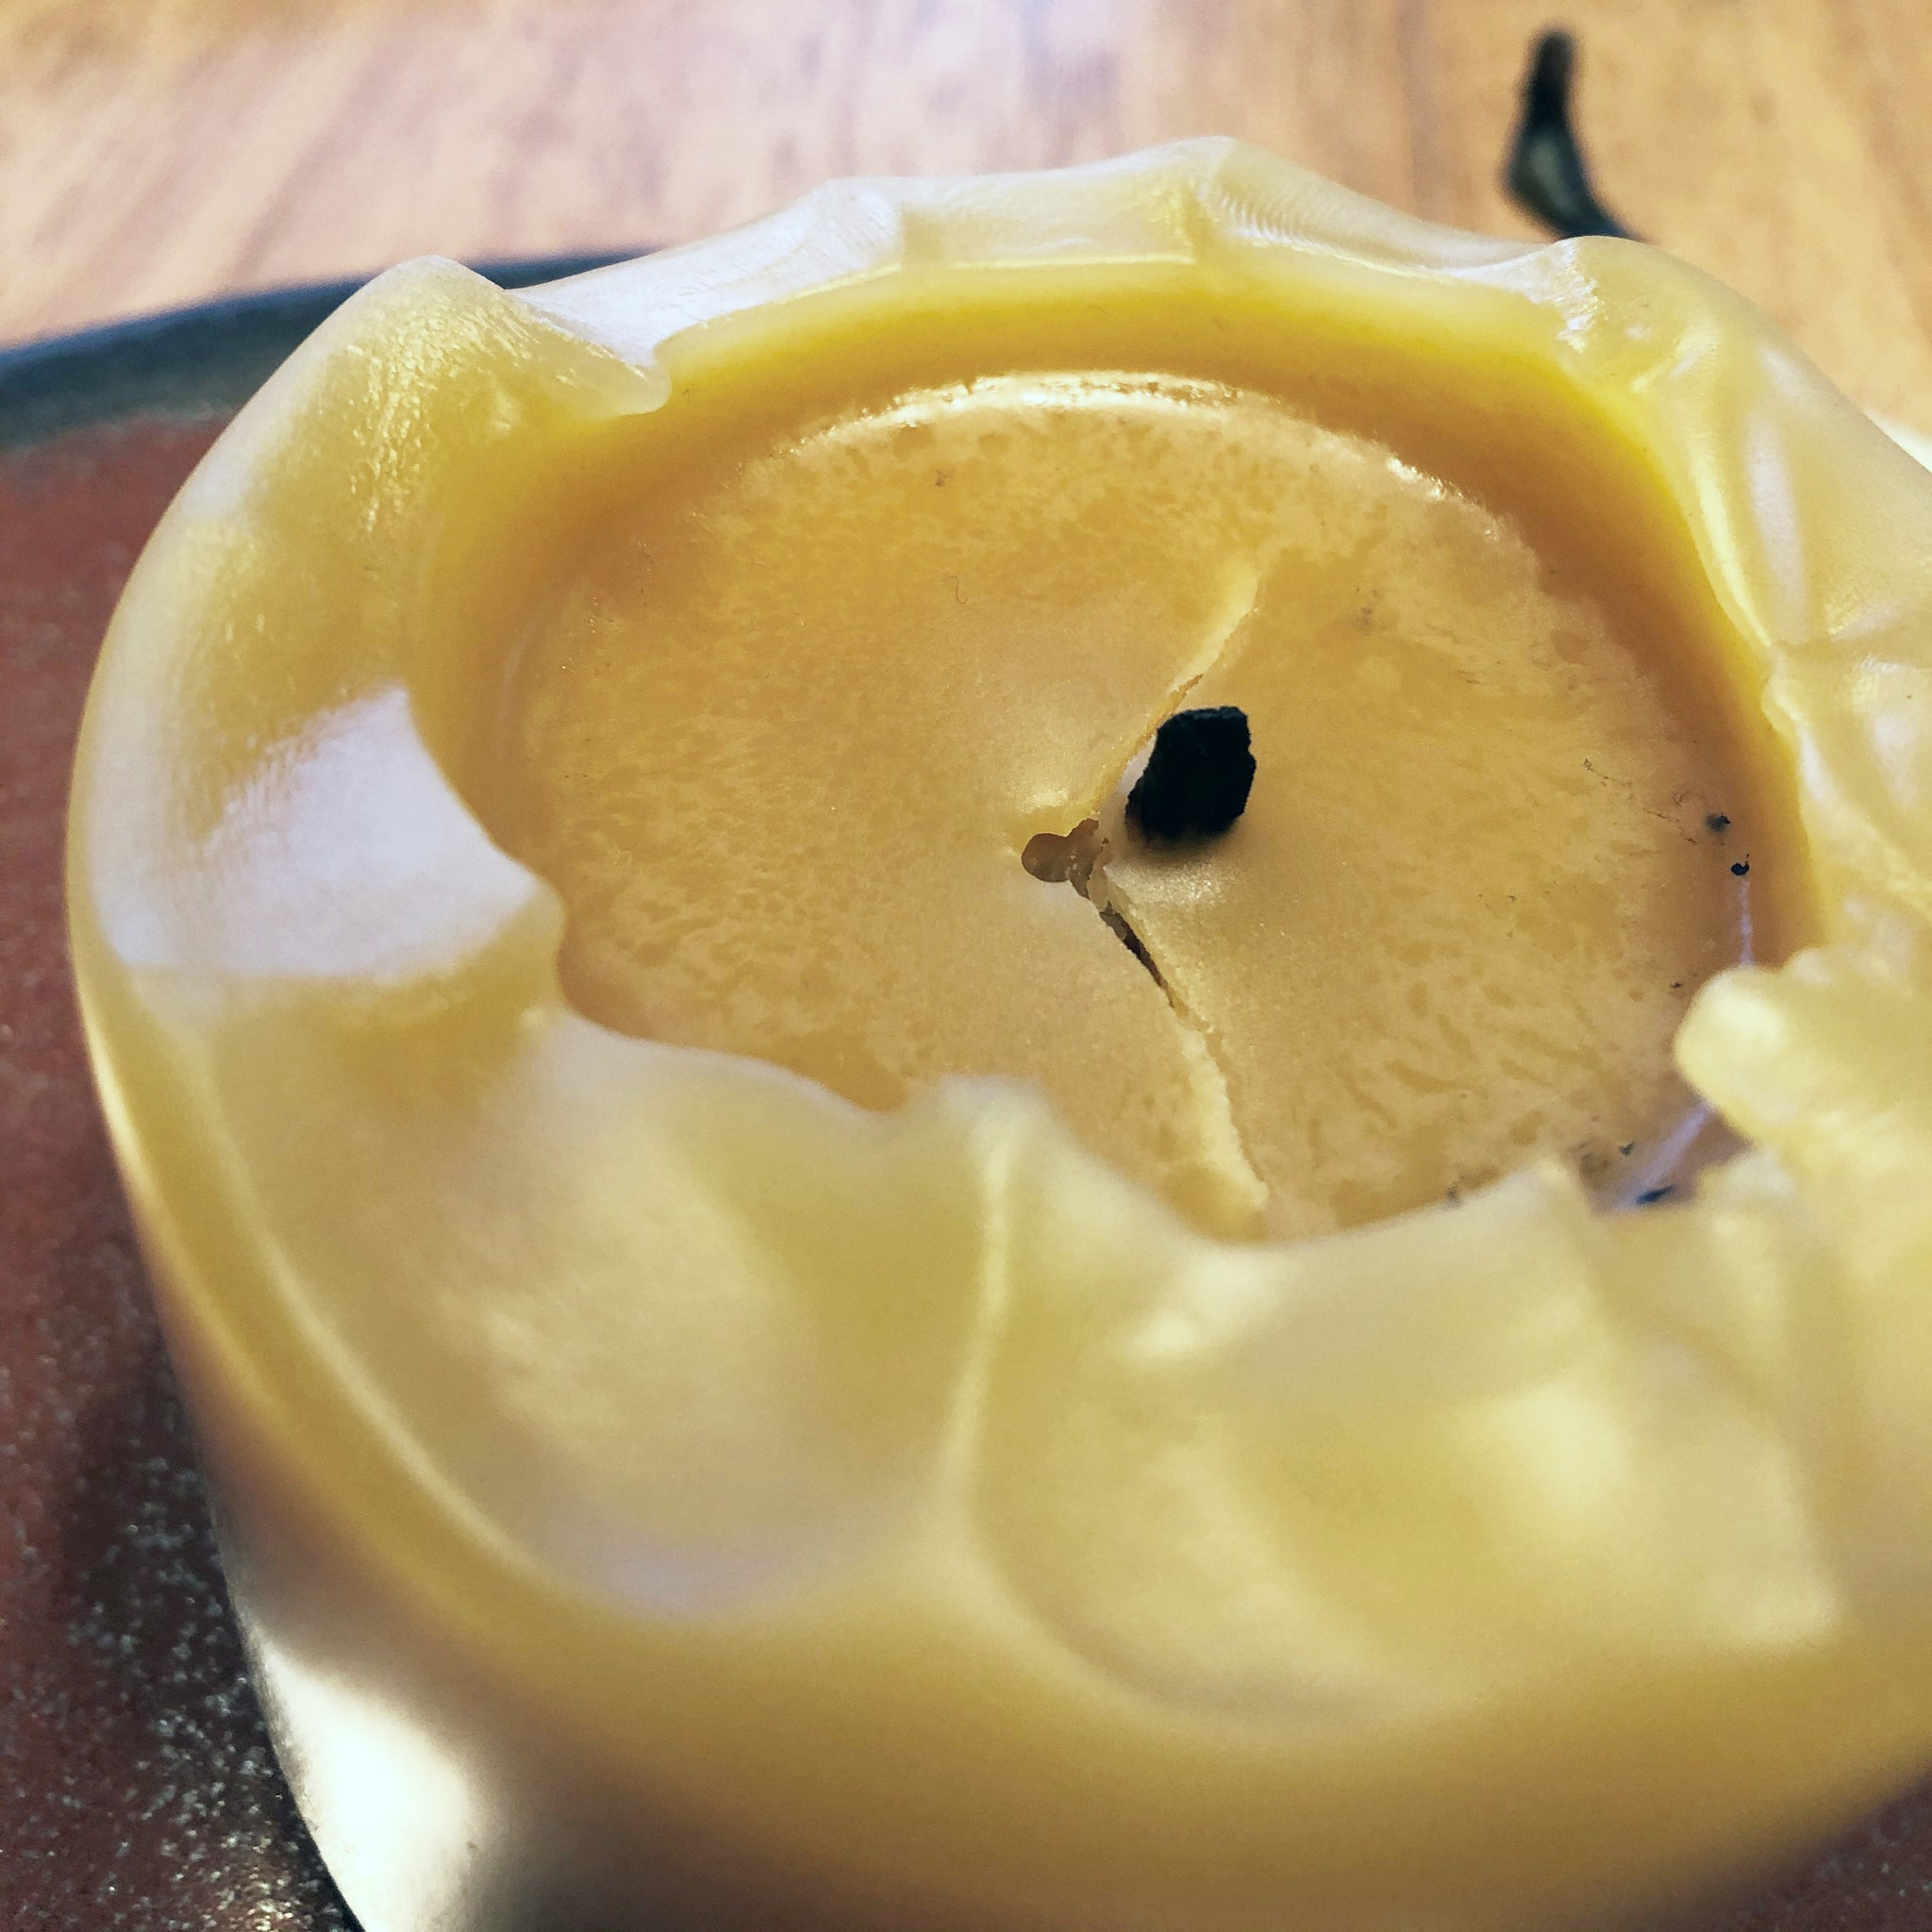 Why did my Beeswax Candle Crack? And how to correct it